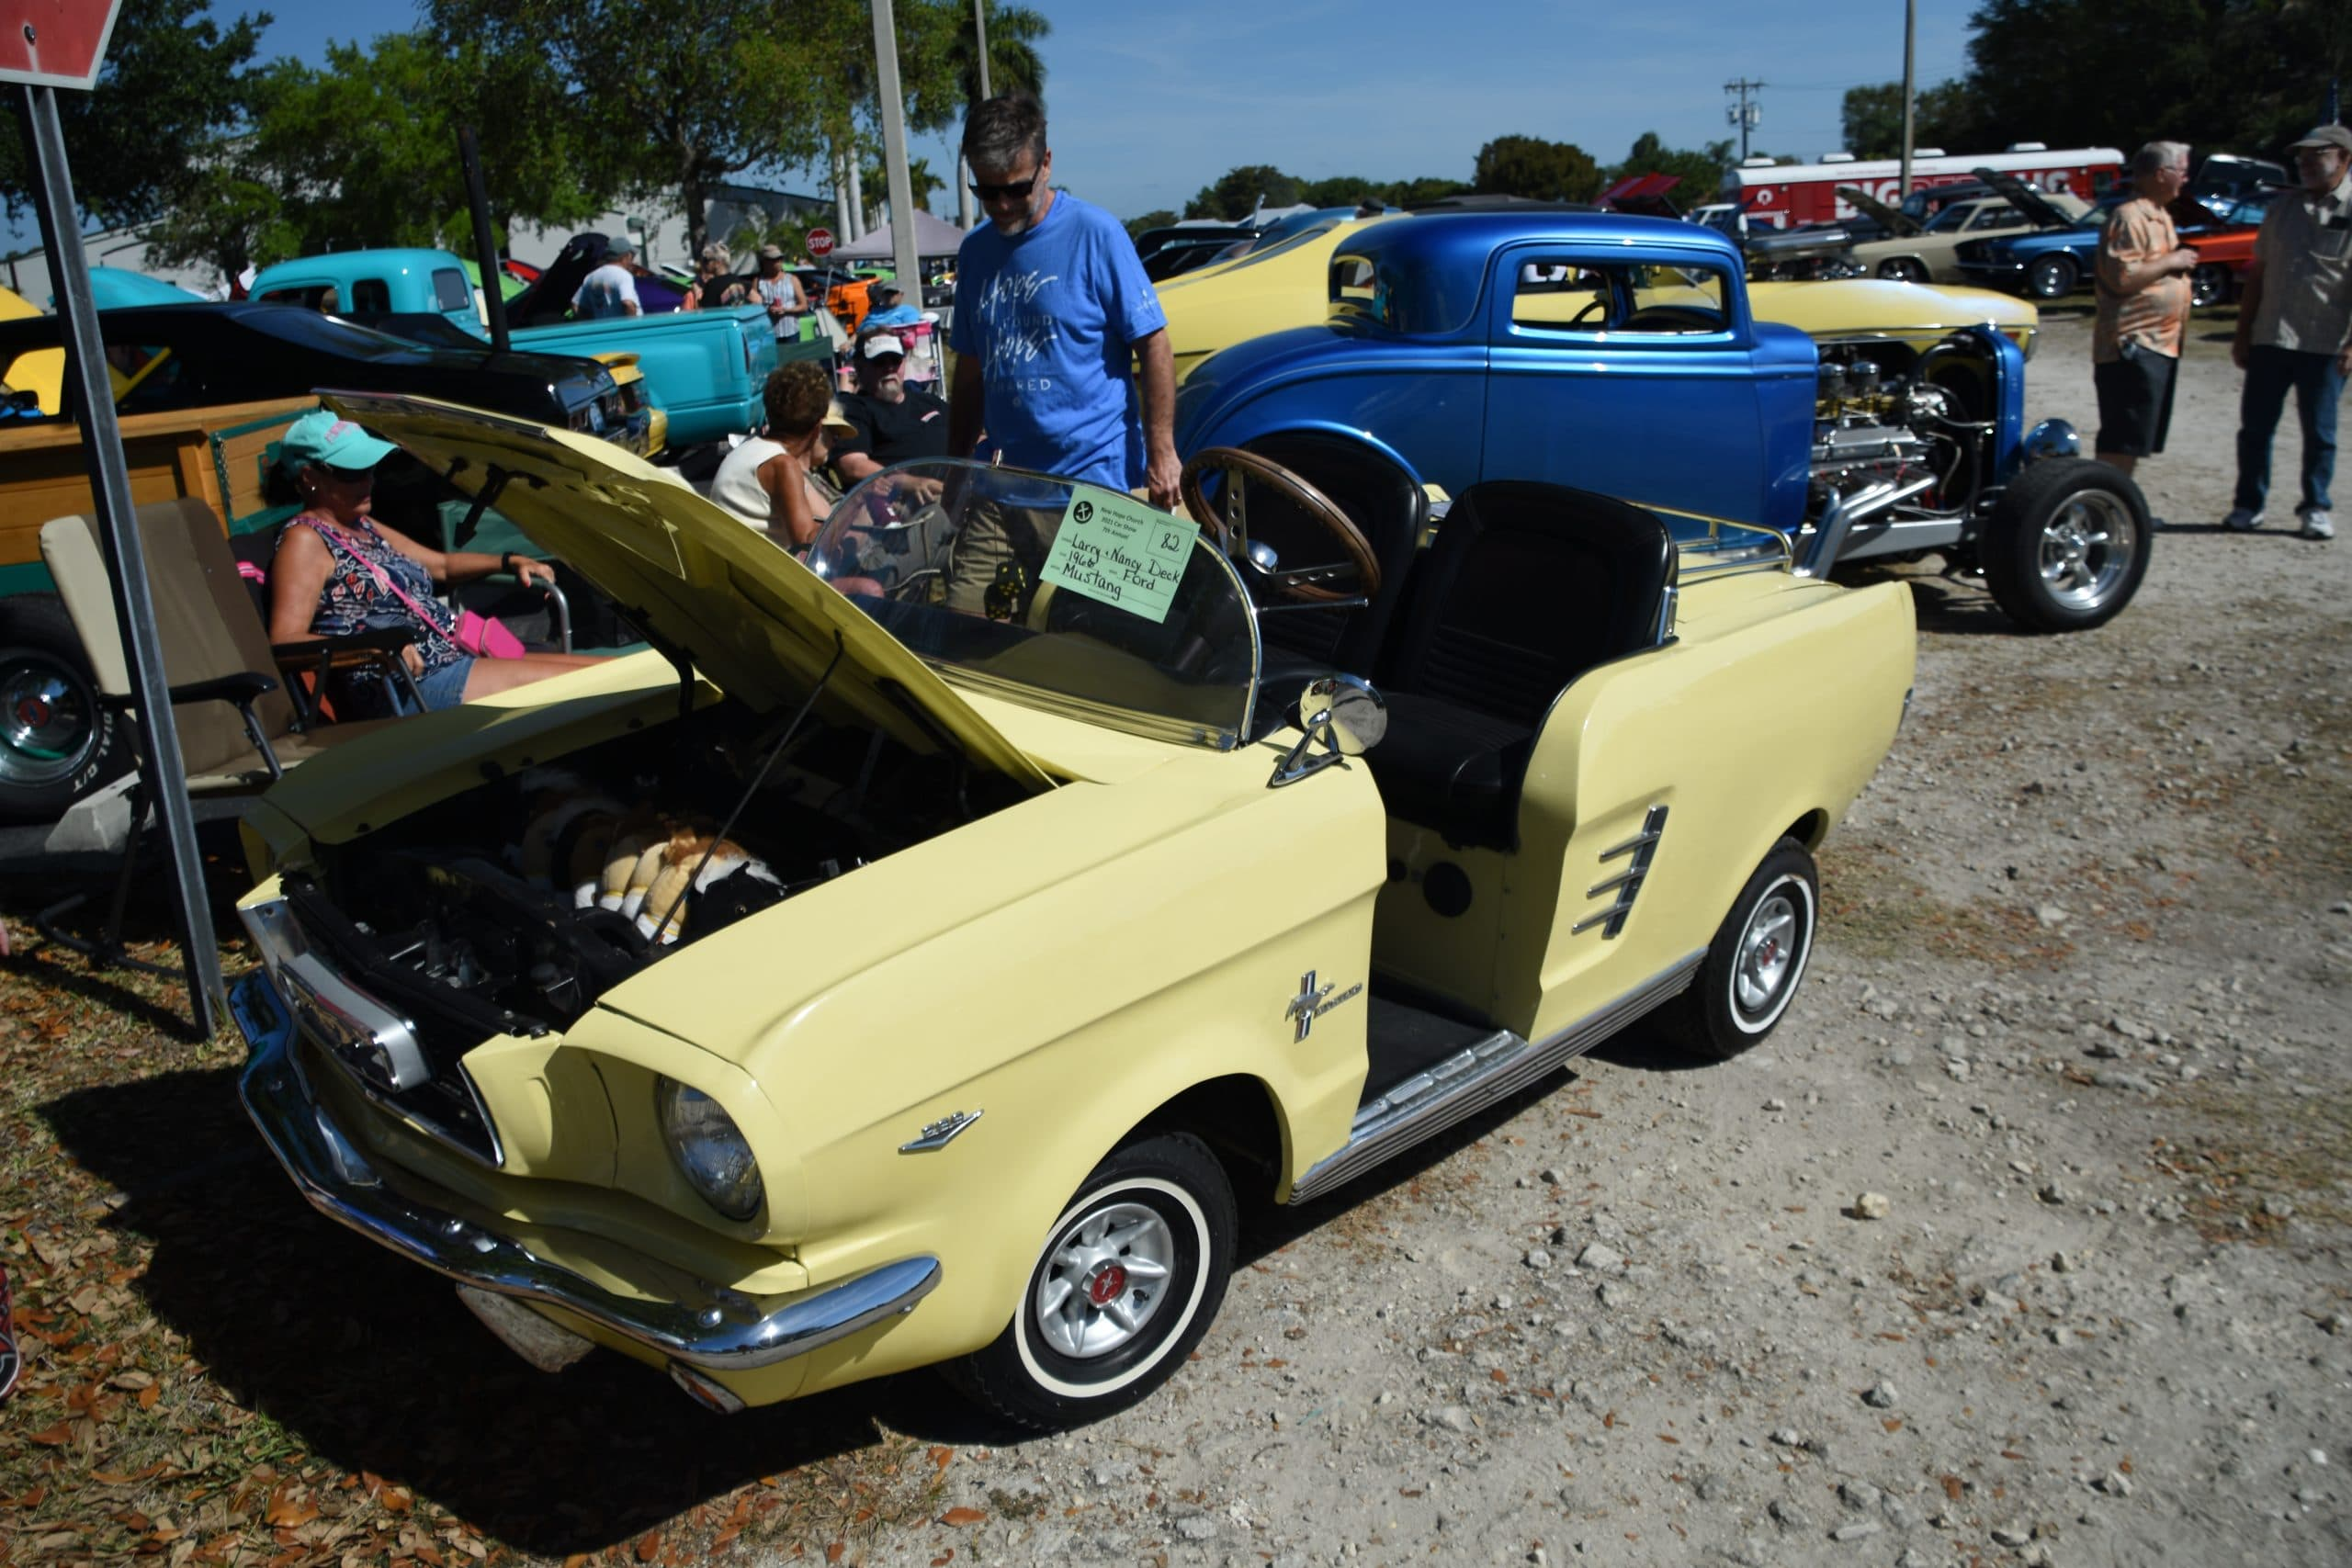 Yellow Golf cart designed to look like a mustang